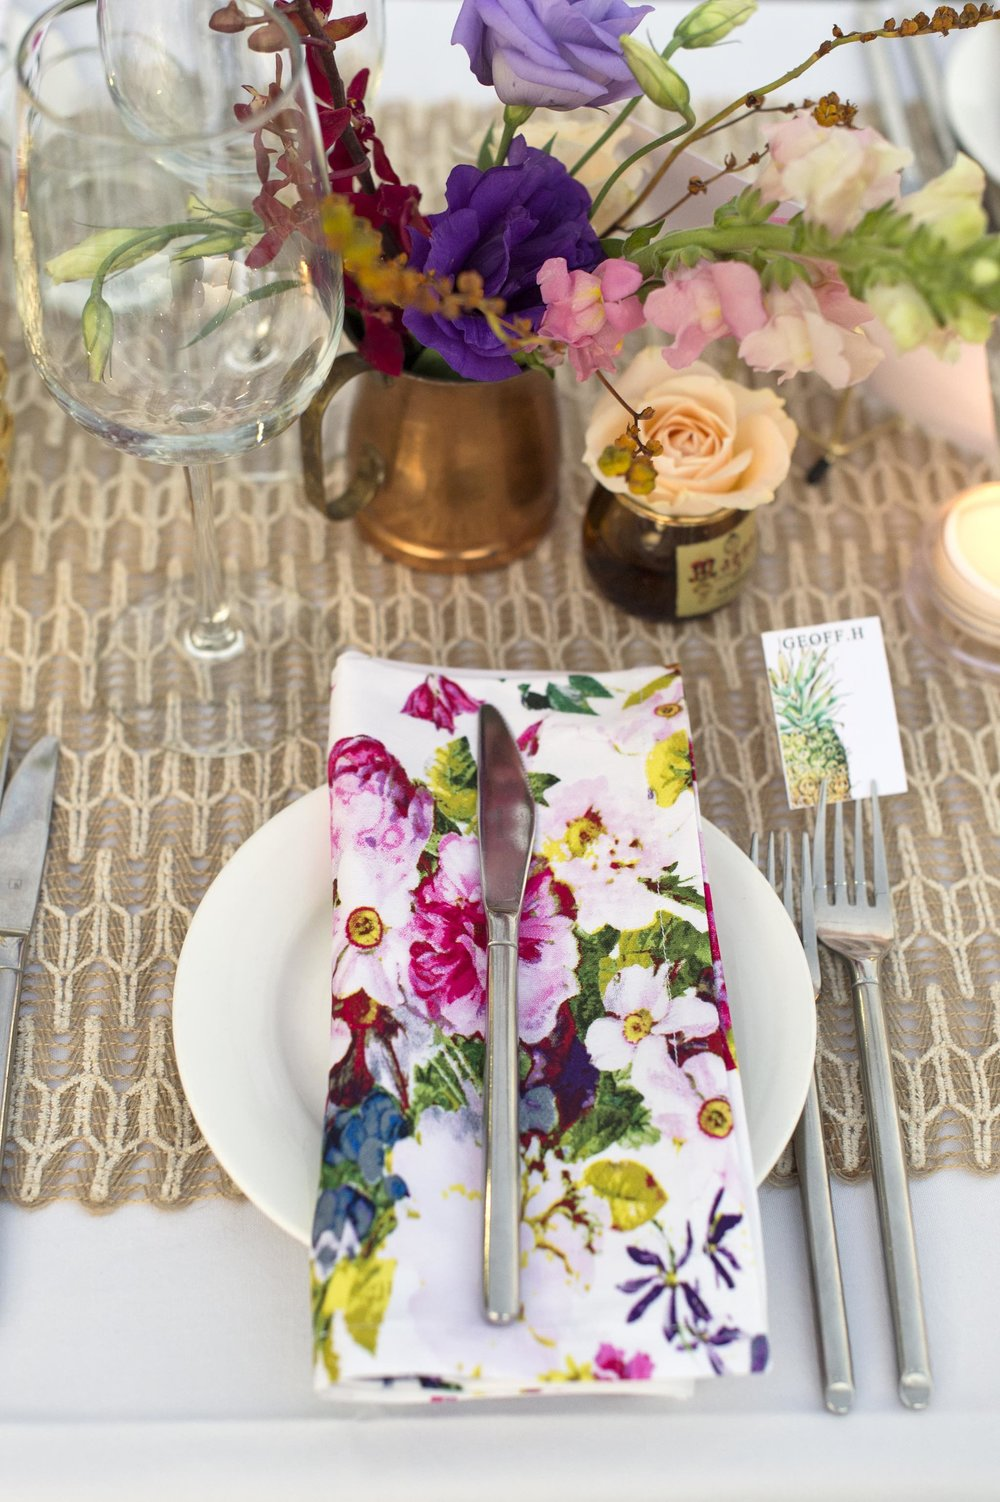 flowers were chosen to match the floral napkins